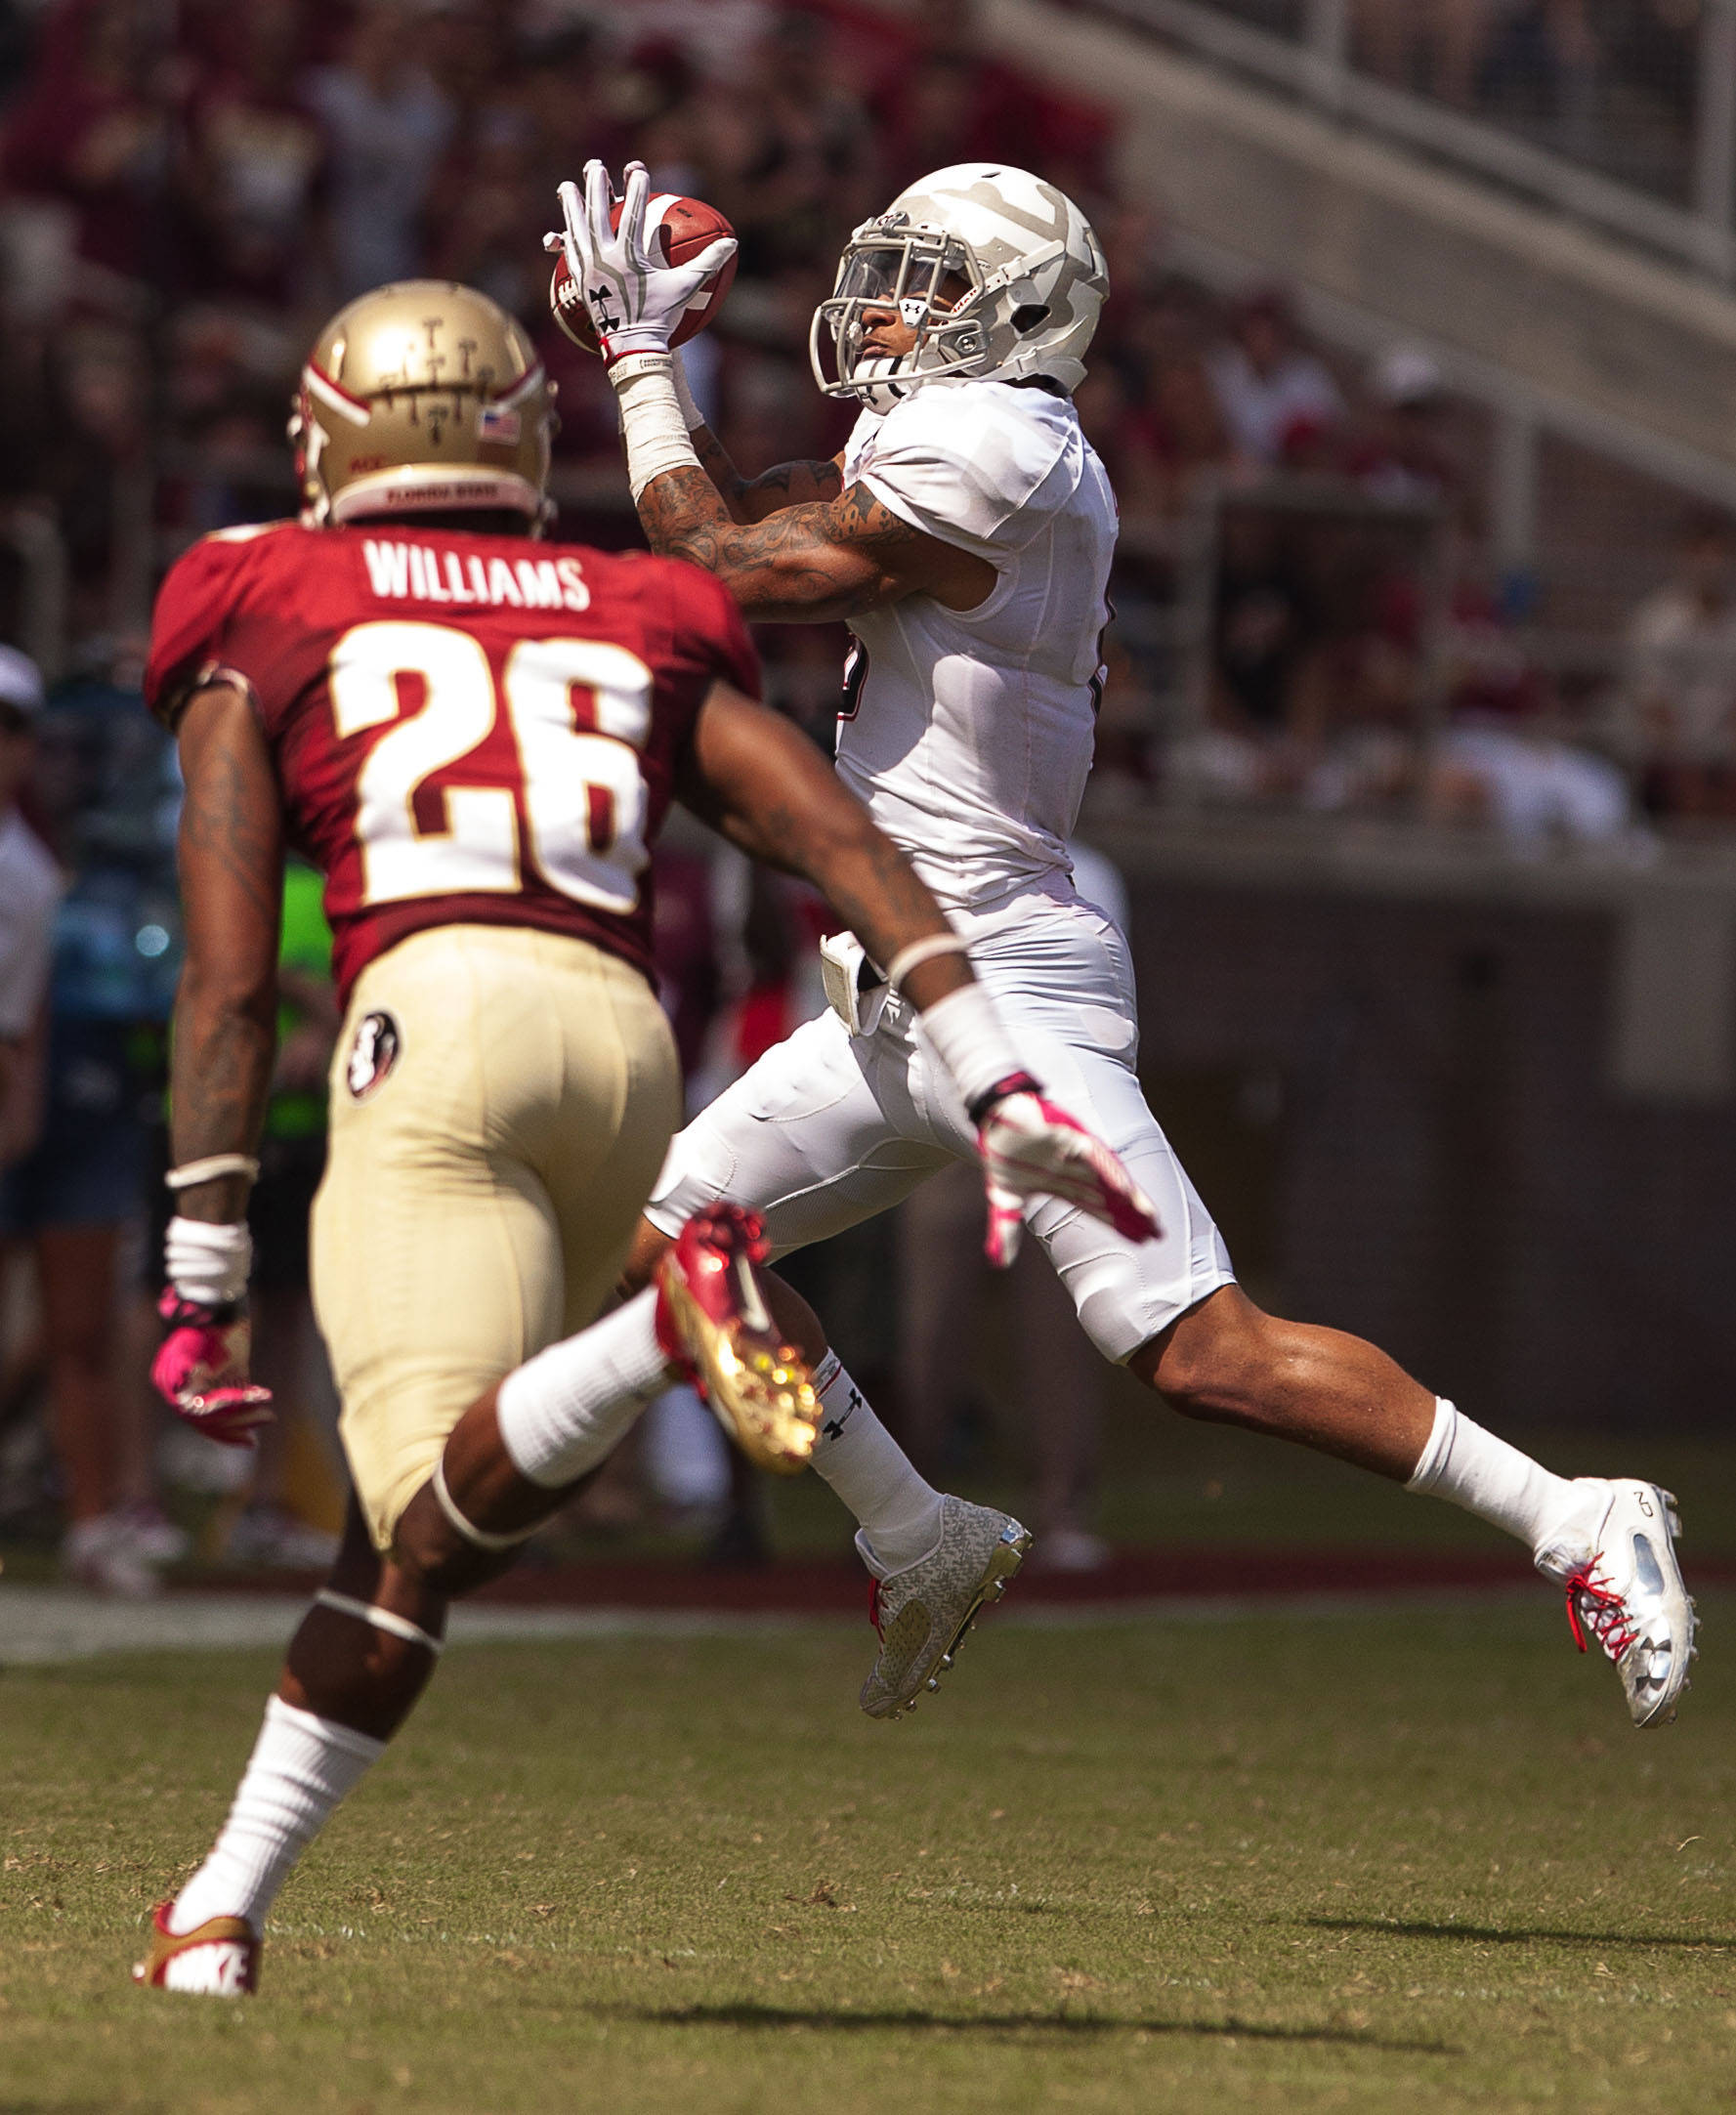 P.J. Williams (26) defends against a Maryland receiver during FSU Football's 63-0 shutout of Maryland on Saturday, October 5, 2013 in Tallahassee, Fla.